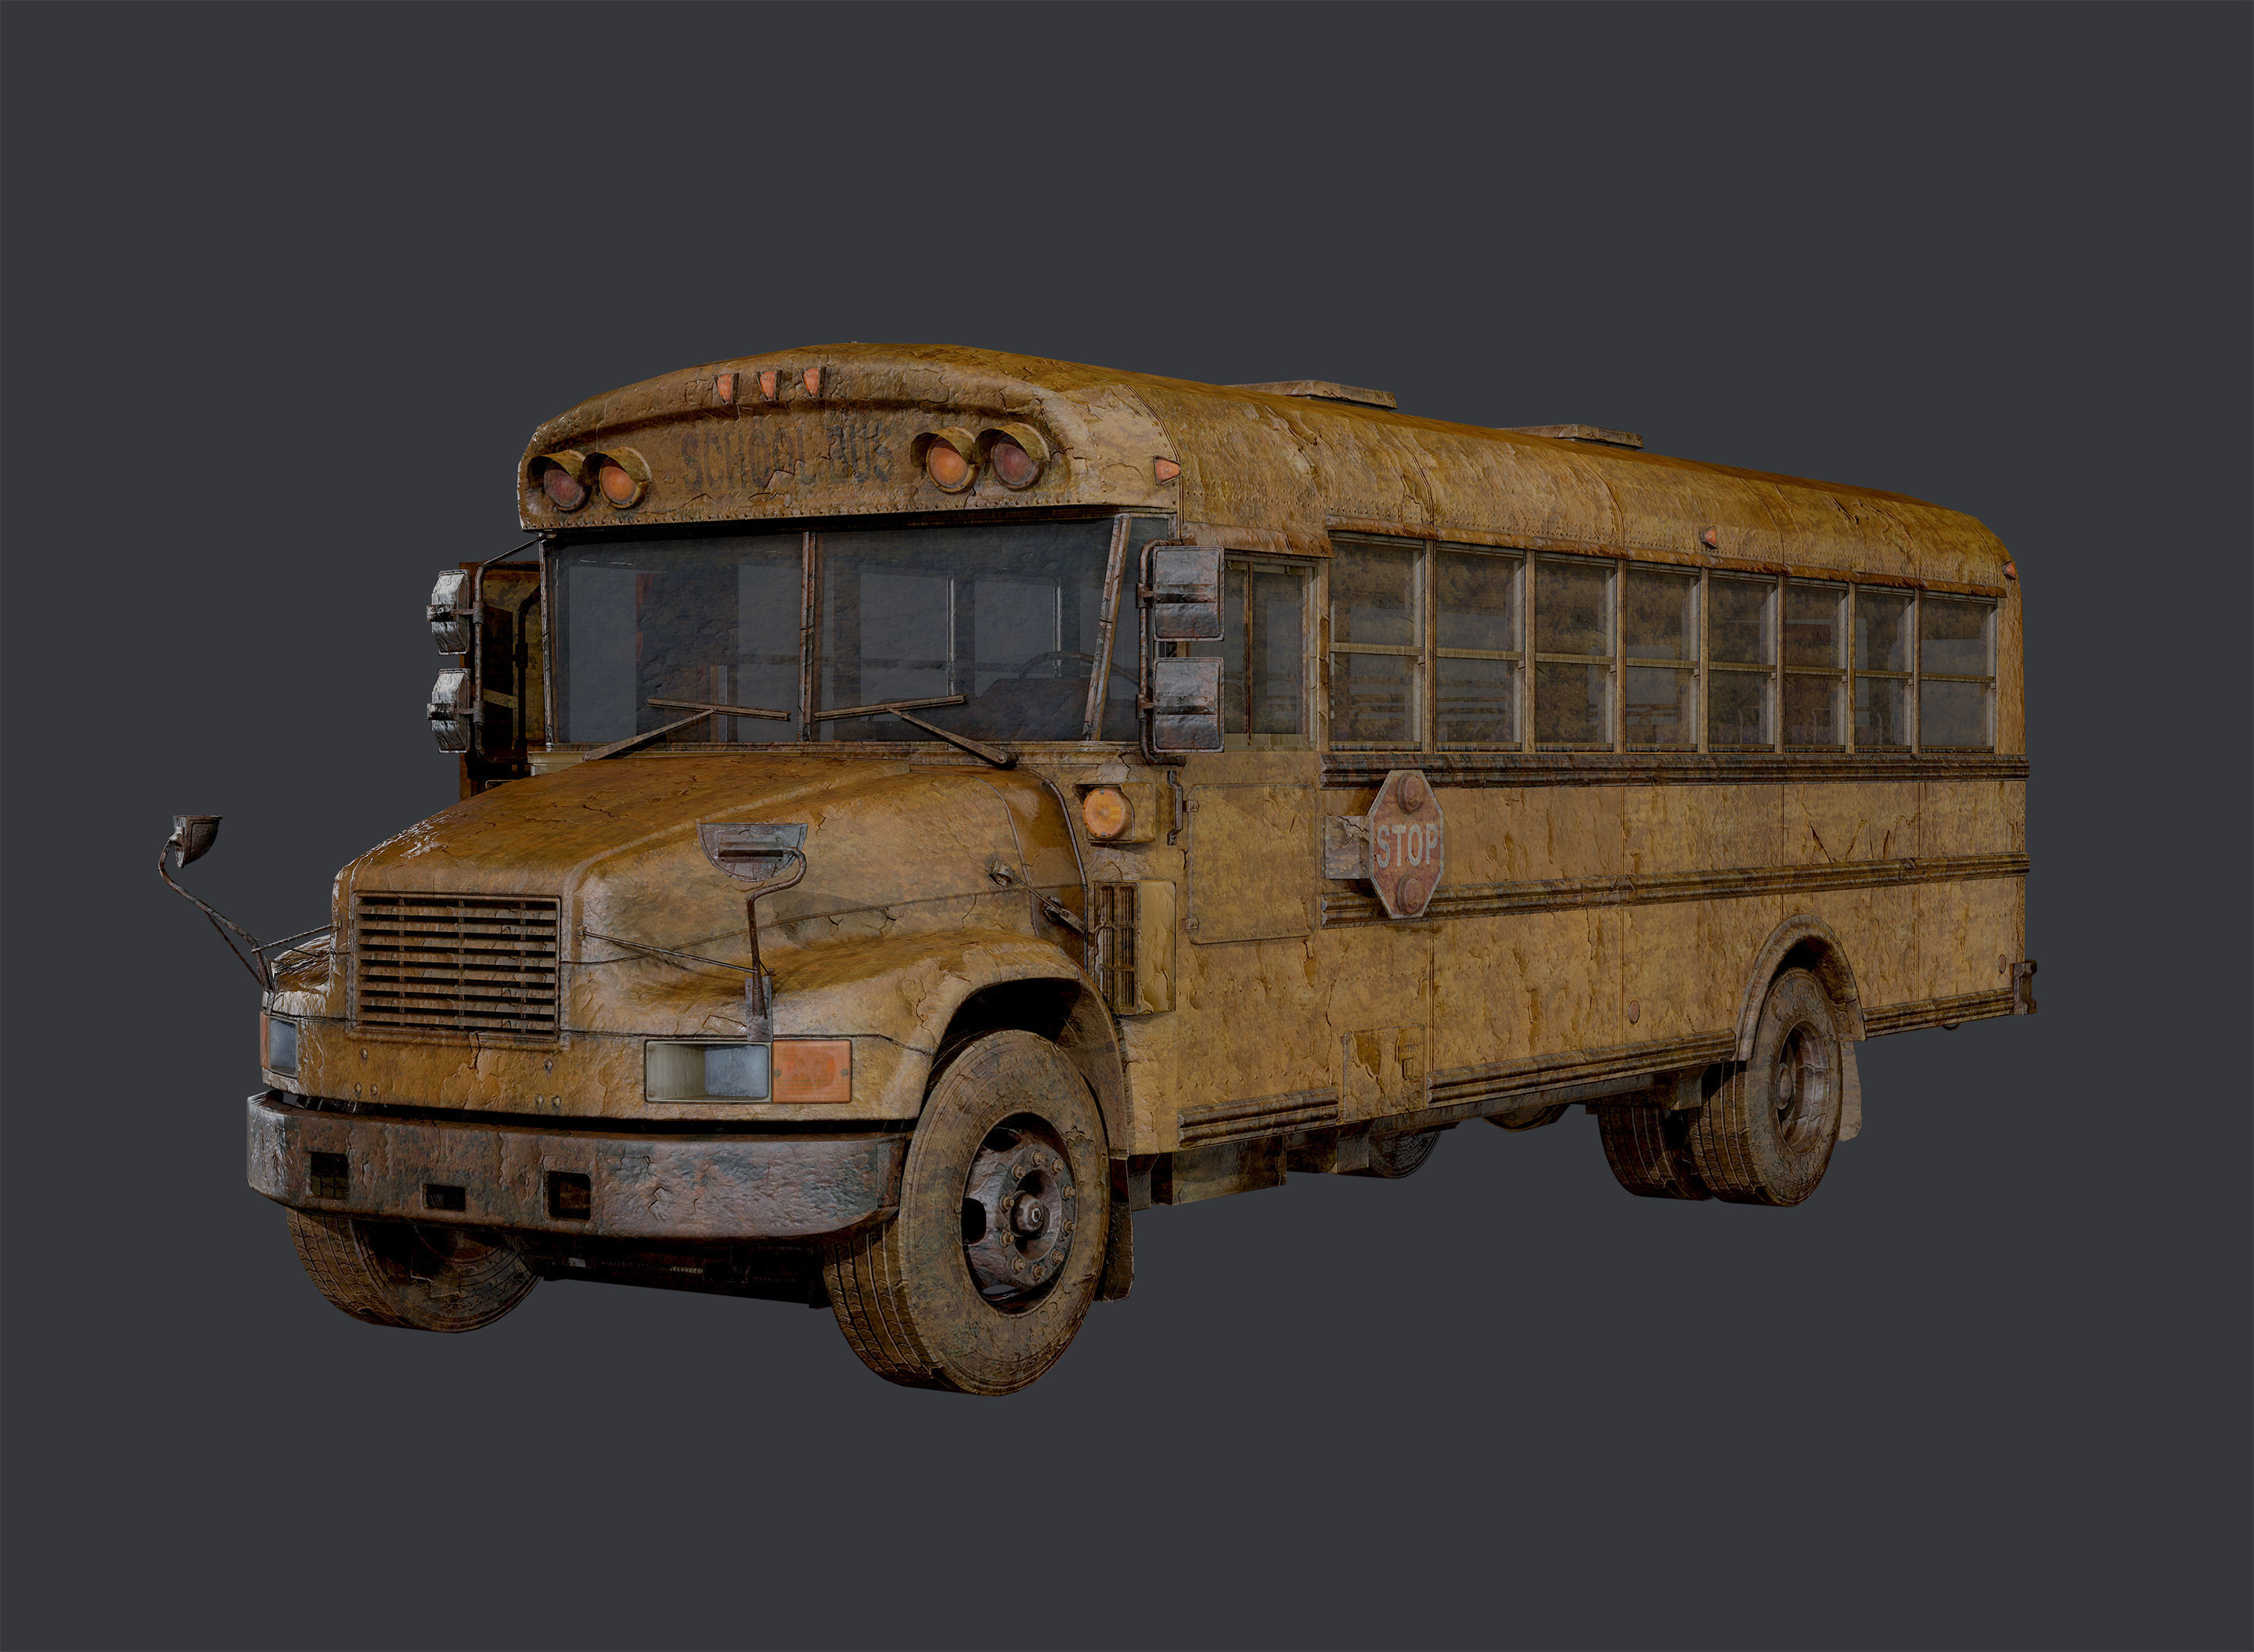 Apocalyptic Damaged Destroyed Vehicle School Bus Game Ready